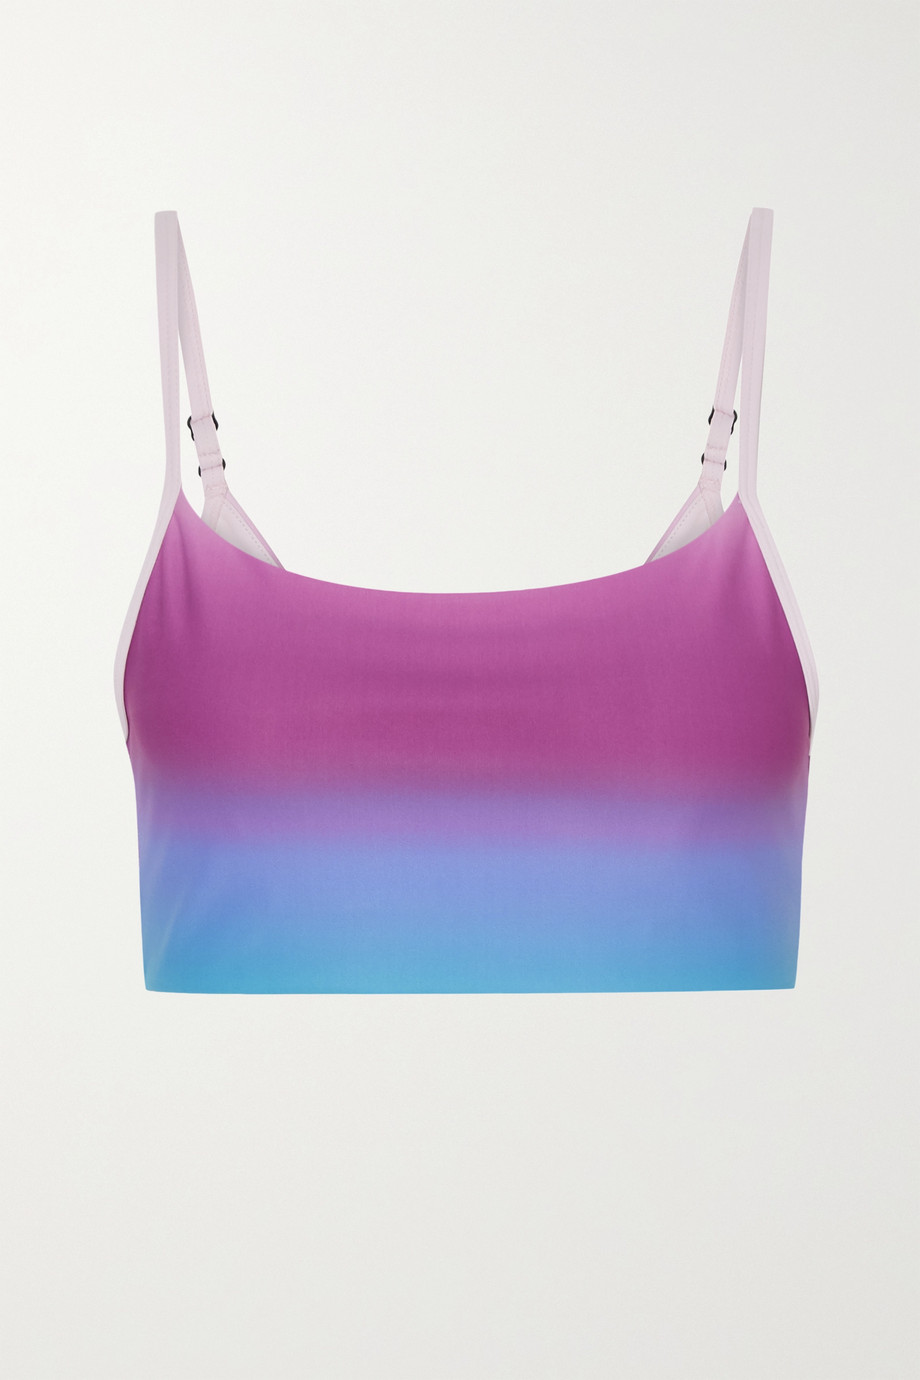 Splits59 Maya ombré stretch sports bra